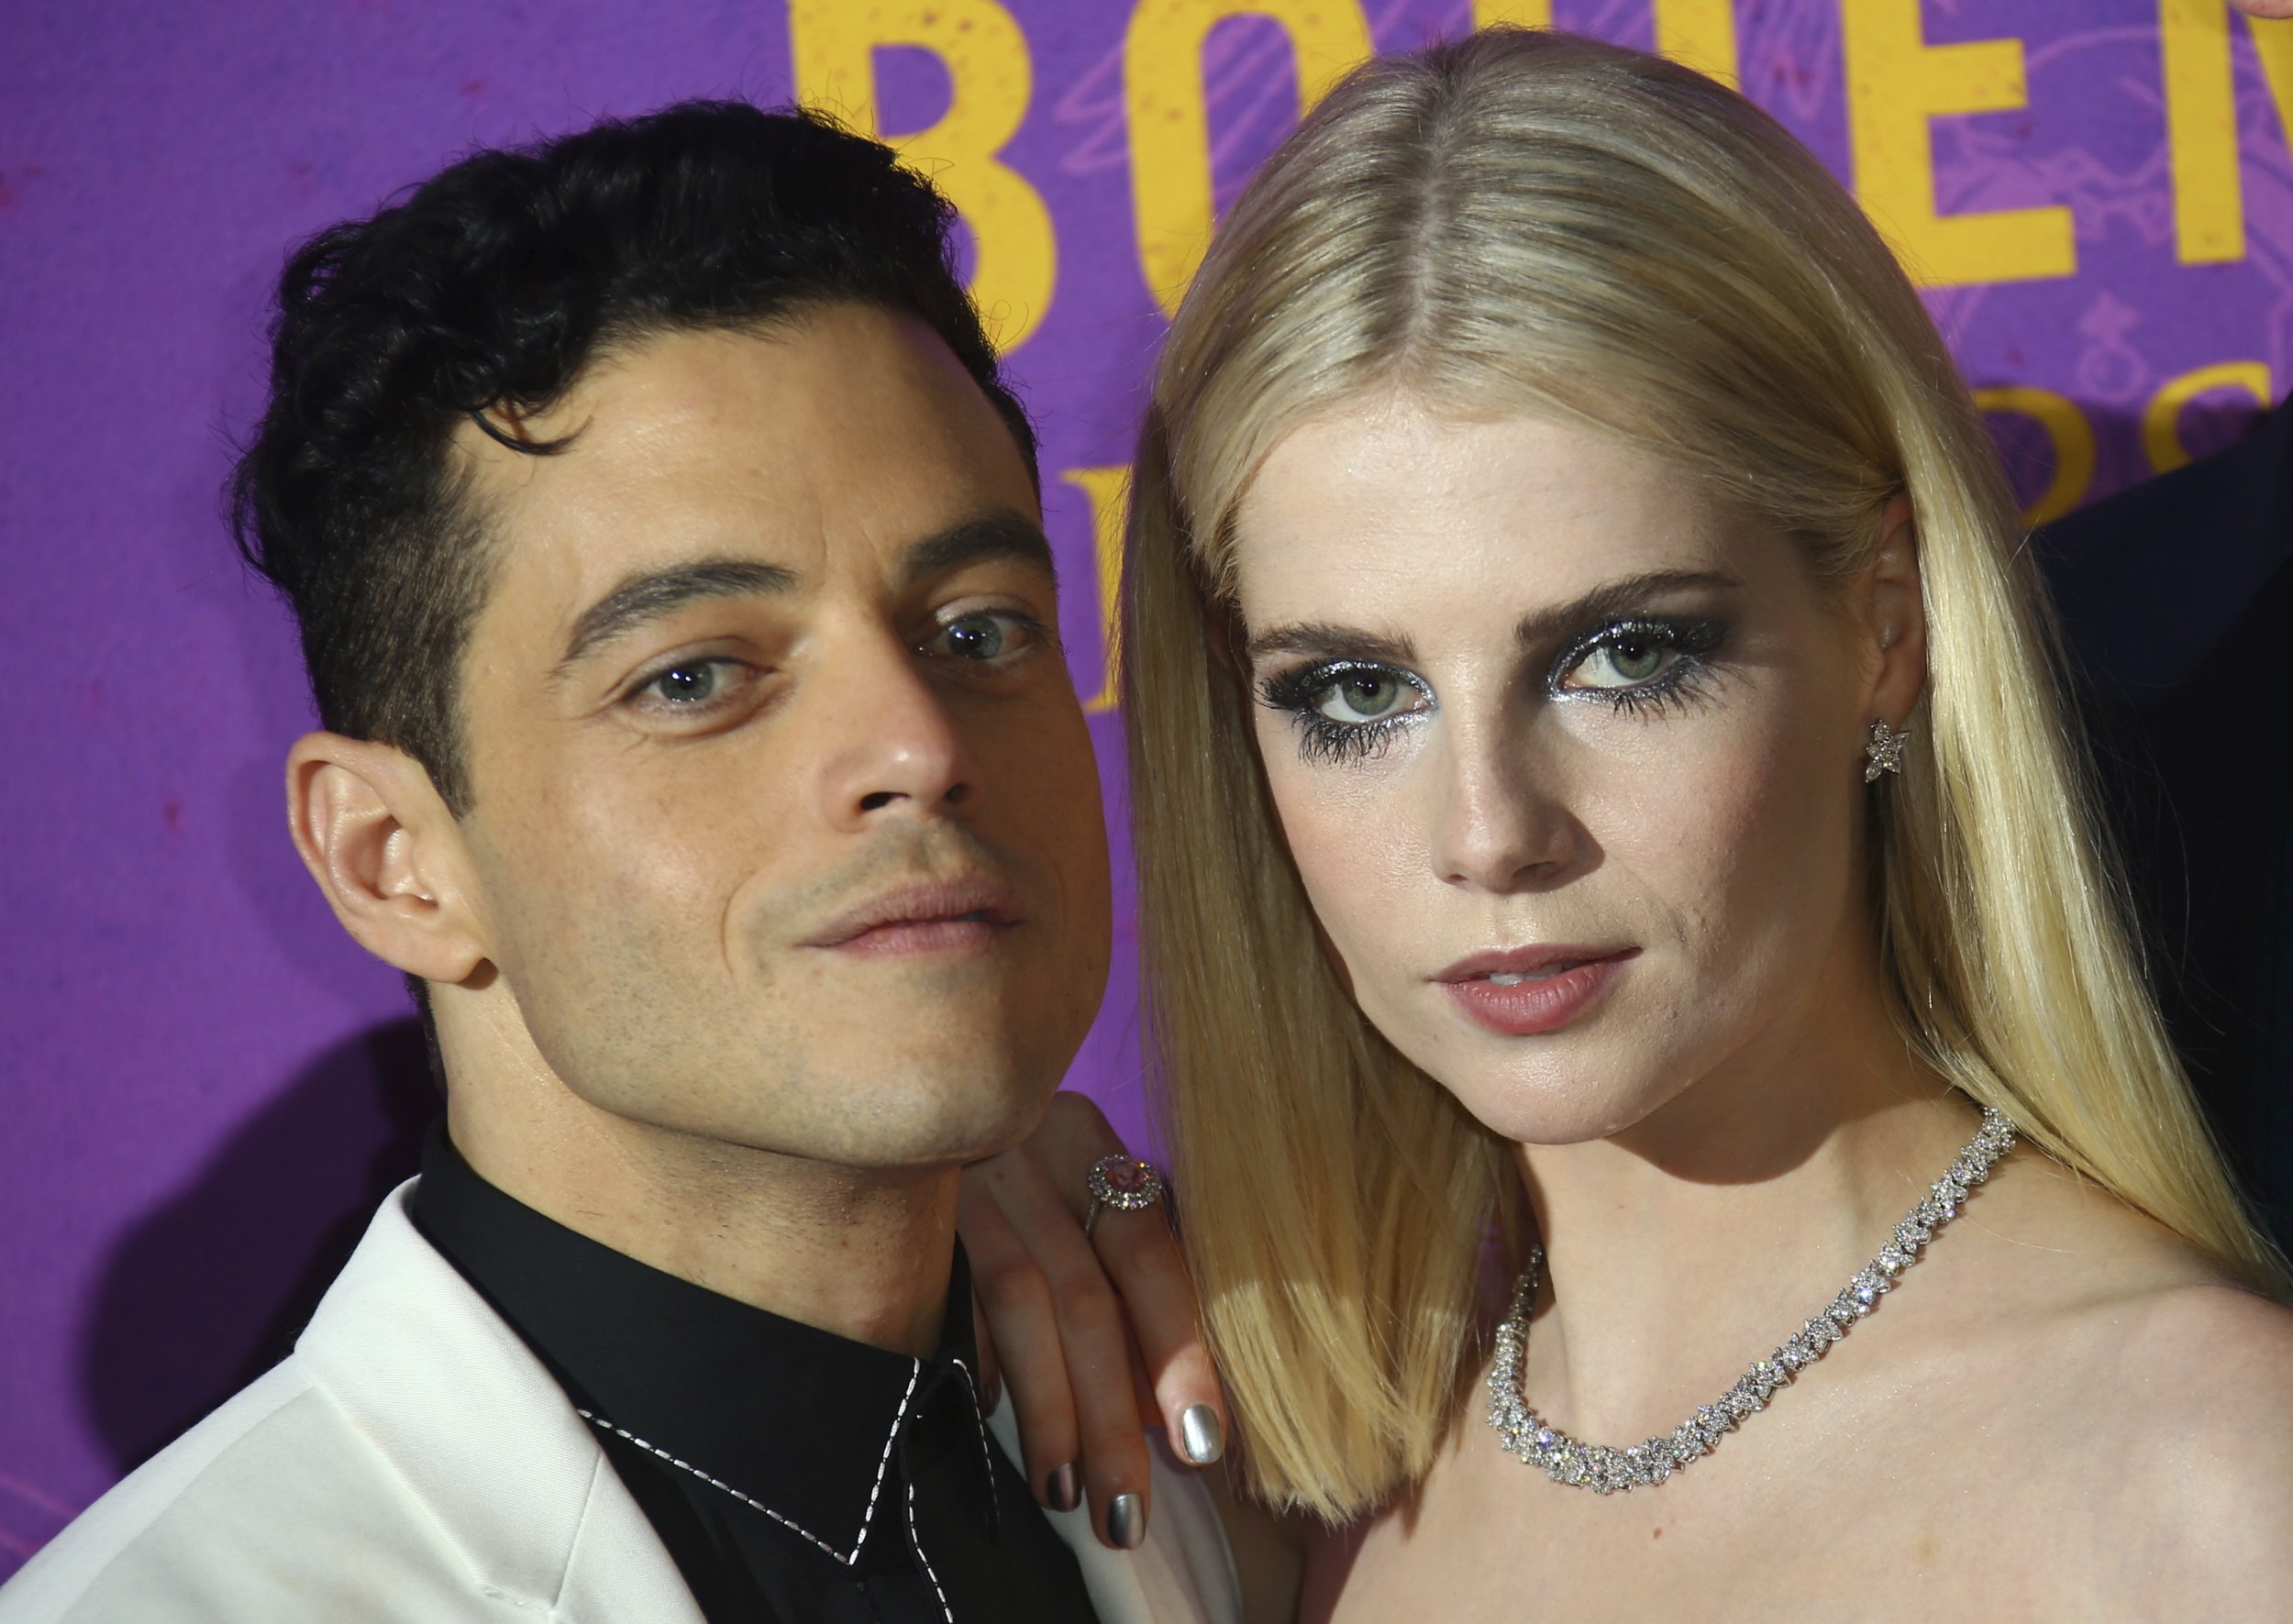 Actors Rami Malek, left, and Lucy Boynton pose for photographers upon arrival at the World premiere of the film 'Bohemian Rhapsody' in London Tuesday, Oct. 23, 2018. (Photo by Joel C Ryan/Invision/AP)